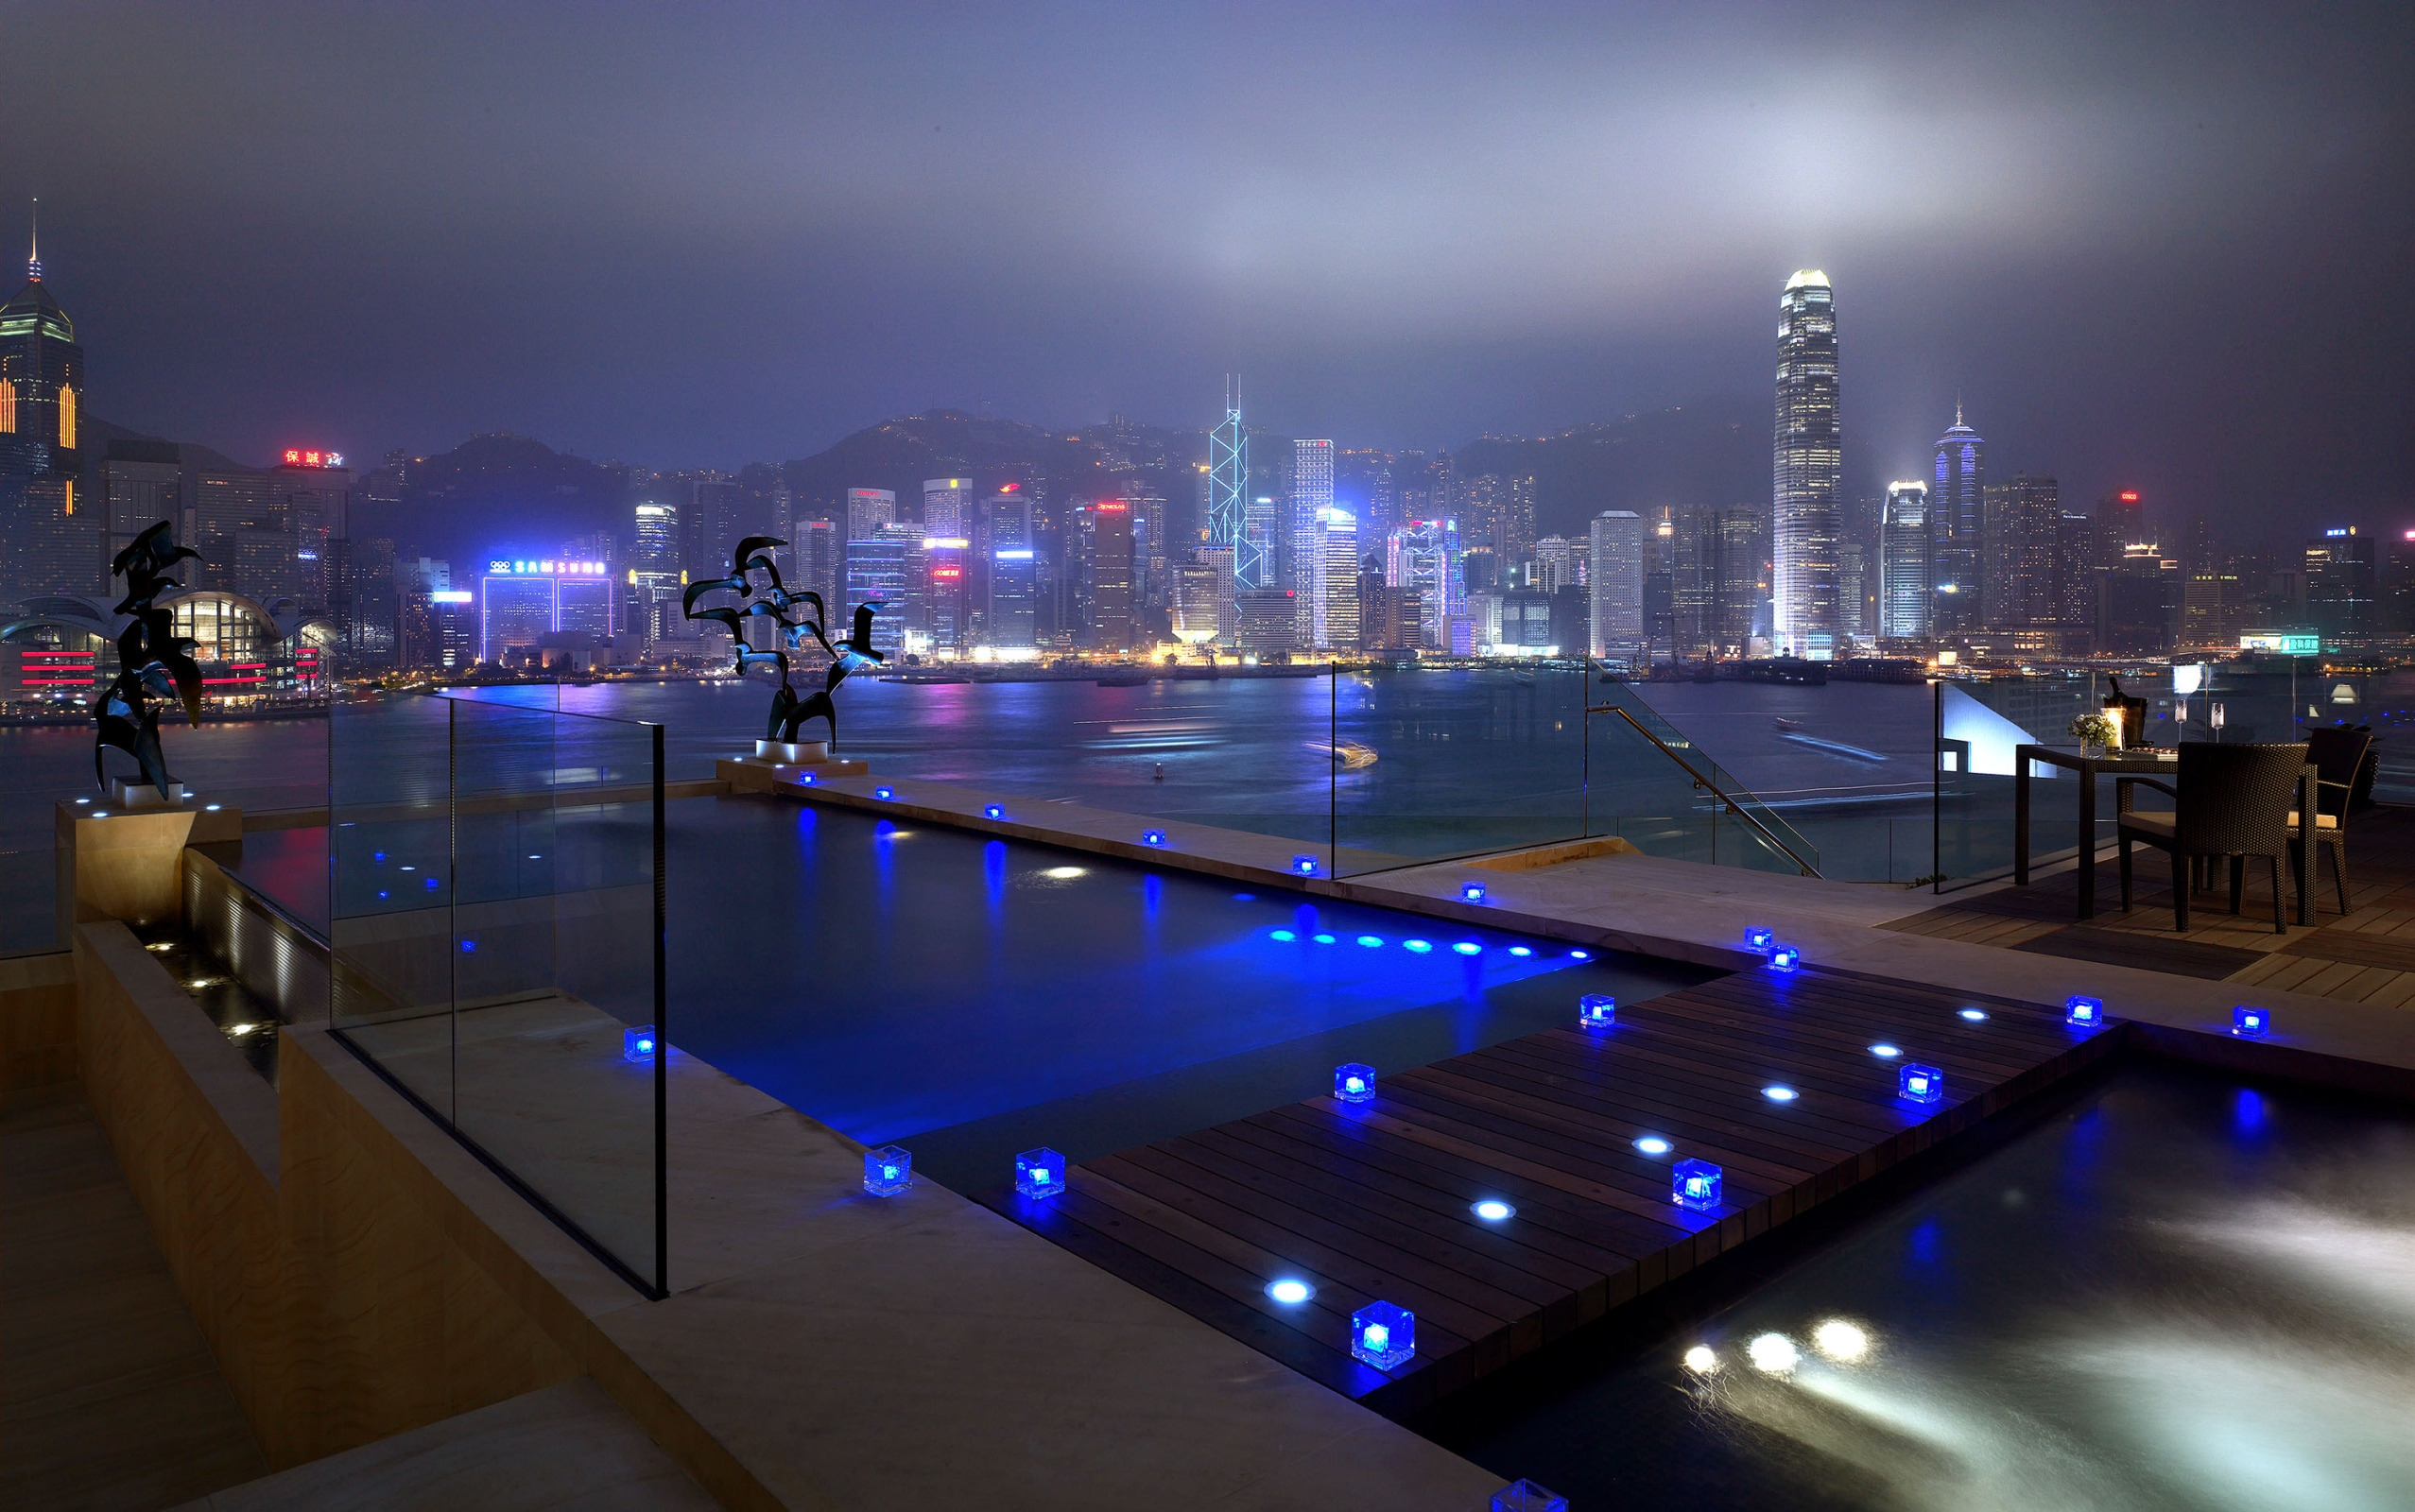 109305 download wallpaper Cities, Houses, Rivers, Windows, Roads, Night, Lights, Shine, Light, Skyscrapers, River, Pool screensavers and pictures for free